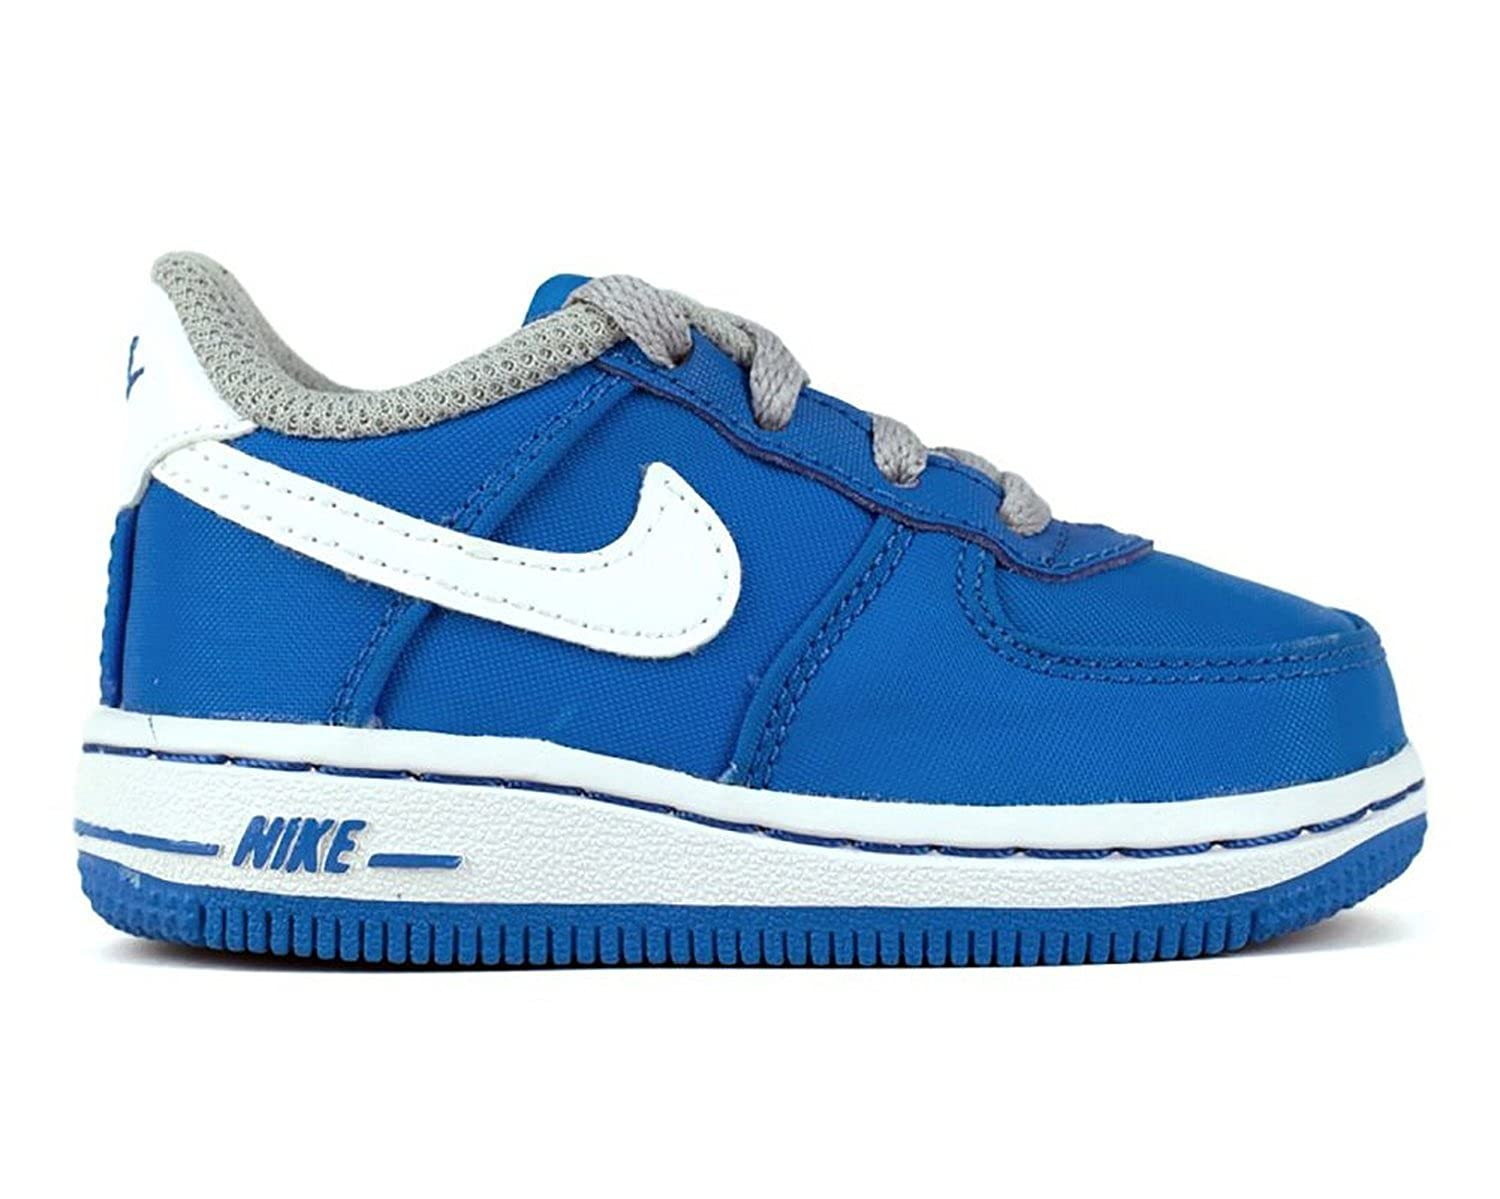 Nike Air Force 1 Photo Blue//White-Wolf Grey TD 4 M US Toddler